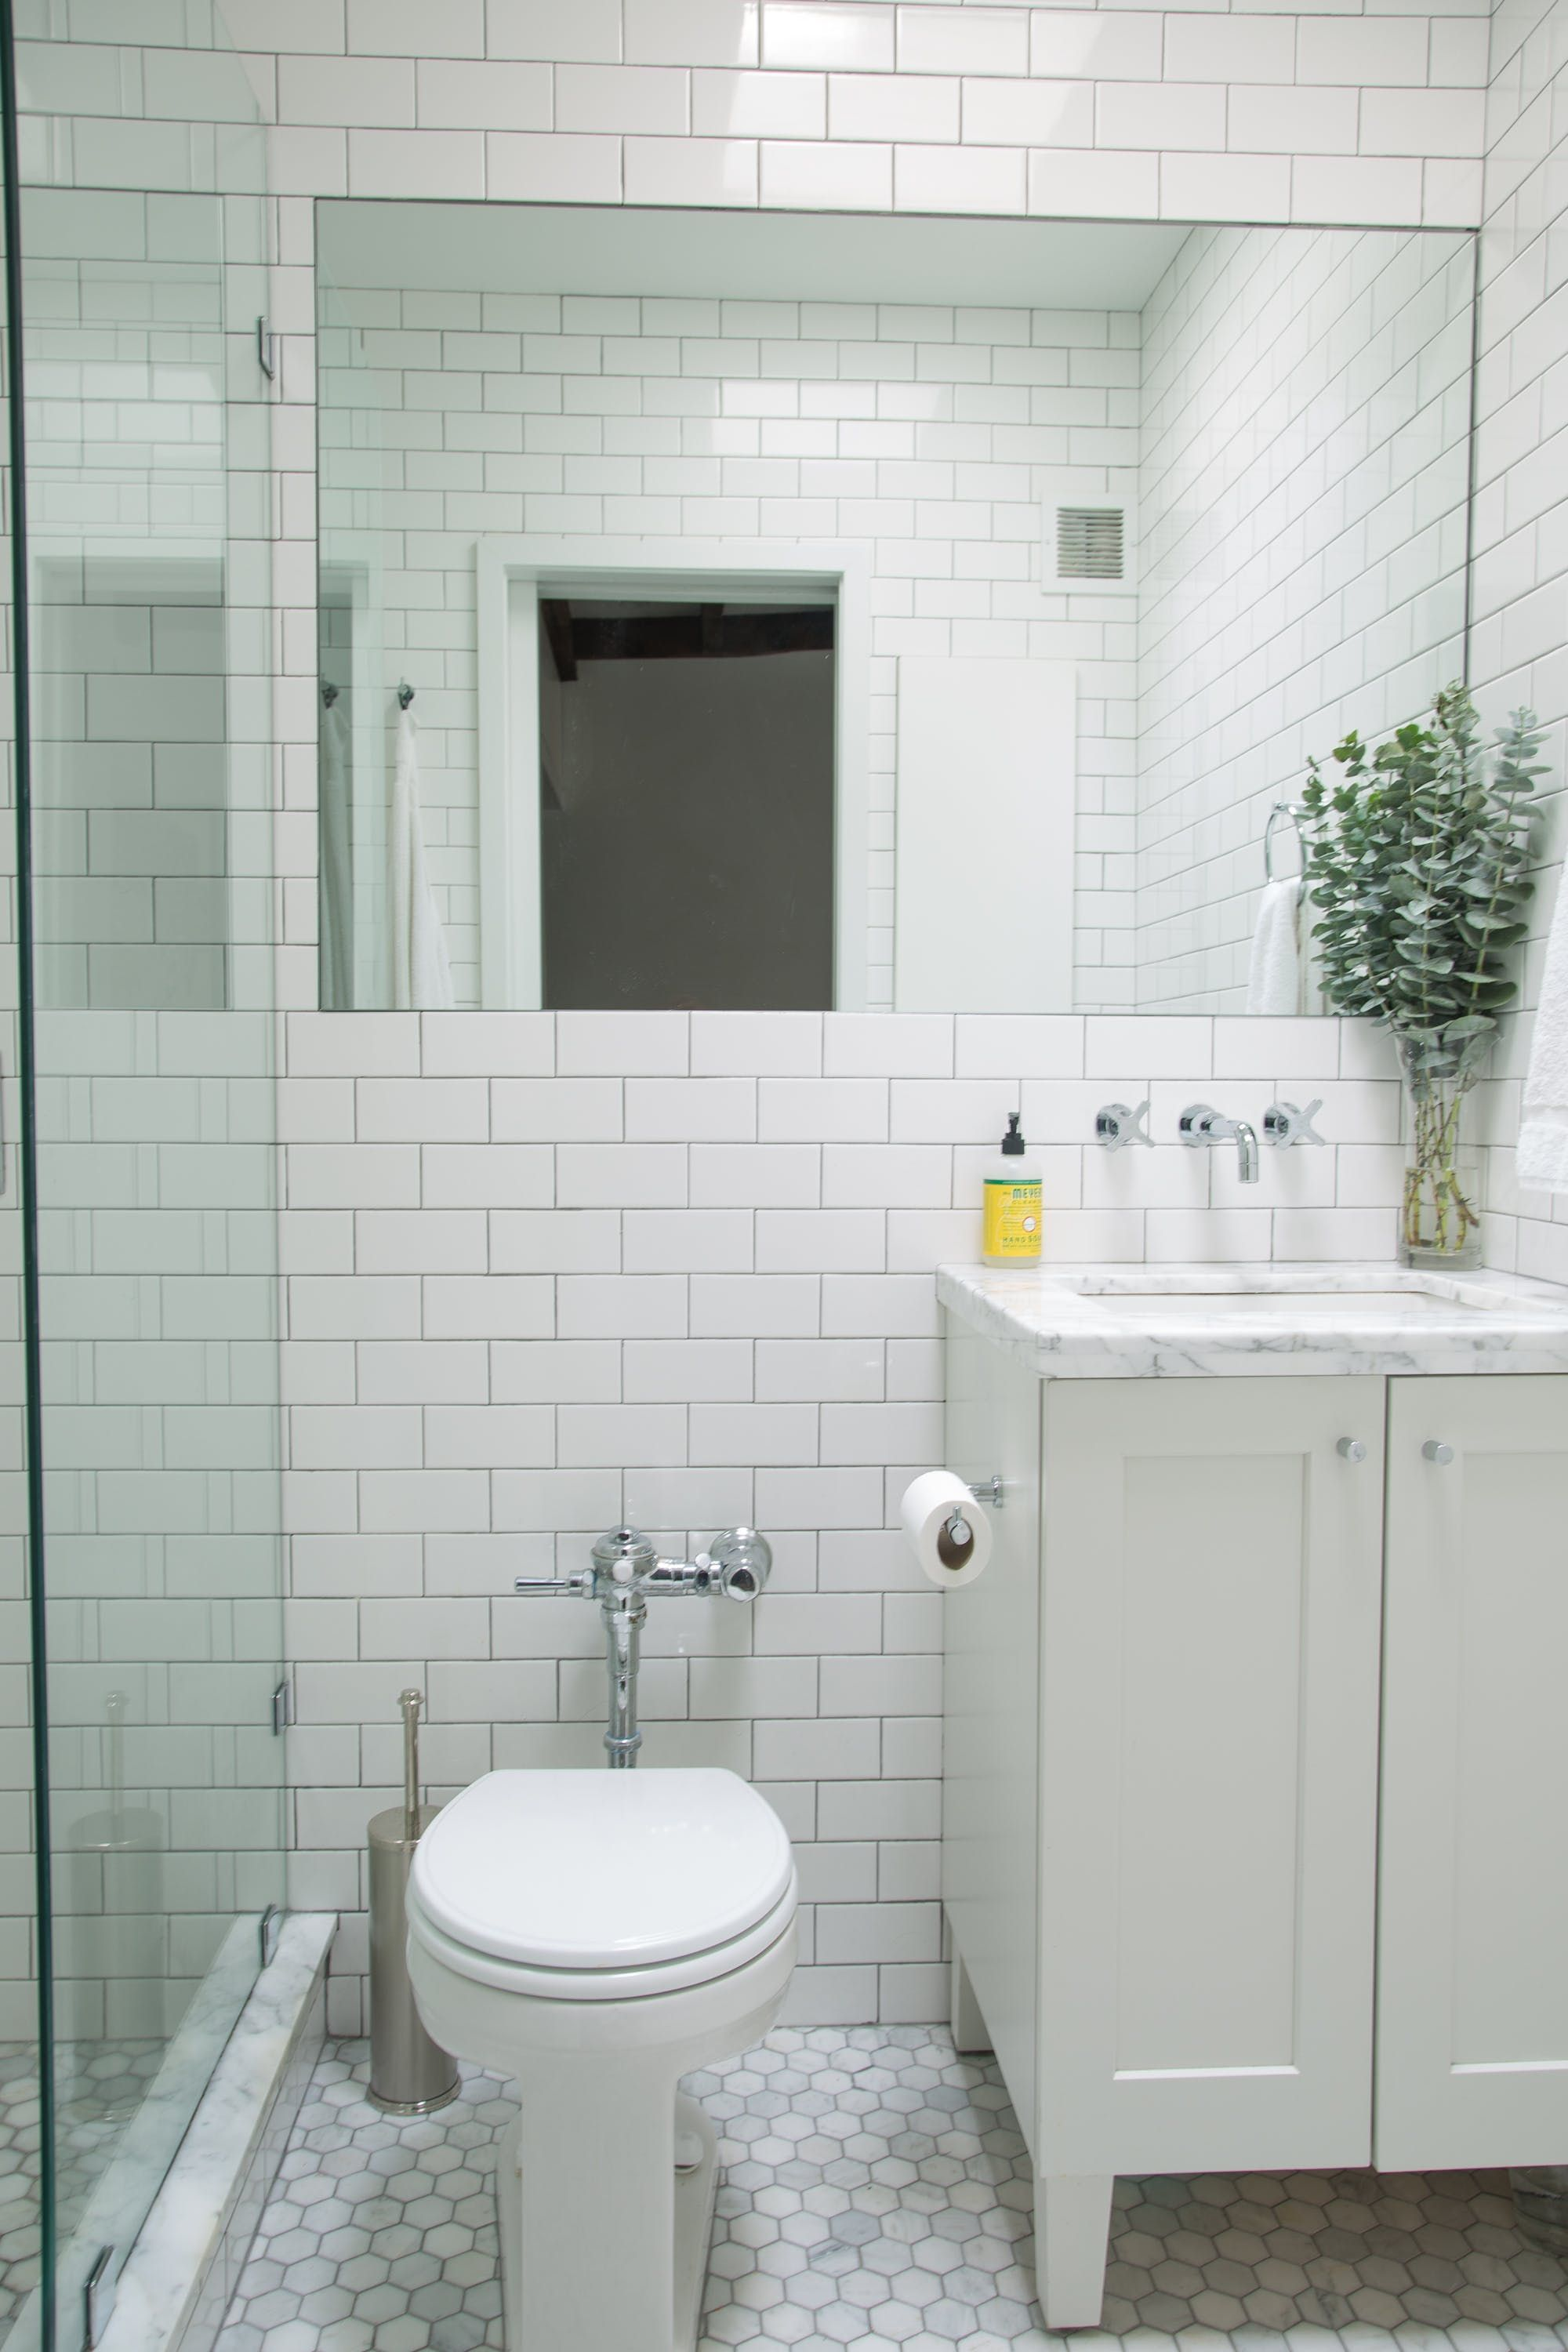 15 Traditional Tall Bathroom Cabinets Design Bathroom Cabinets Designs Bathroom Renovation Trends Bathroom Tall Cabinet